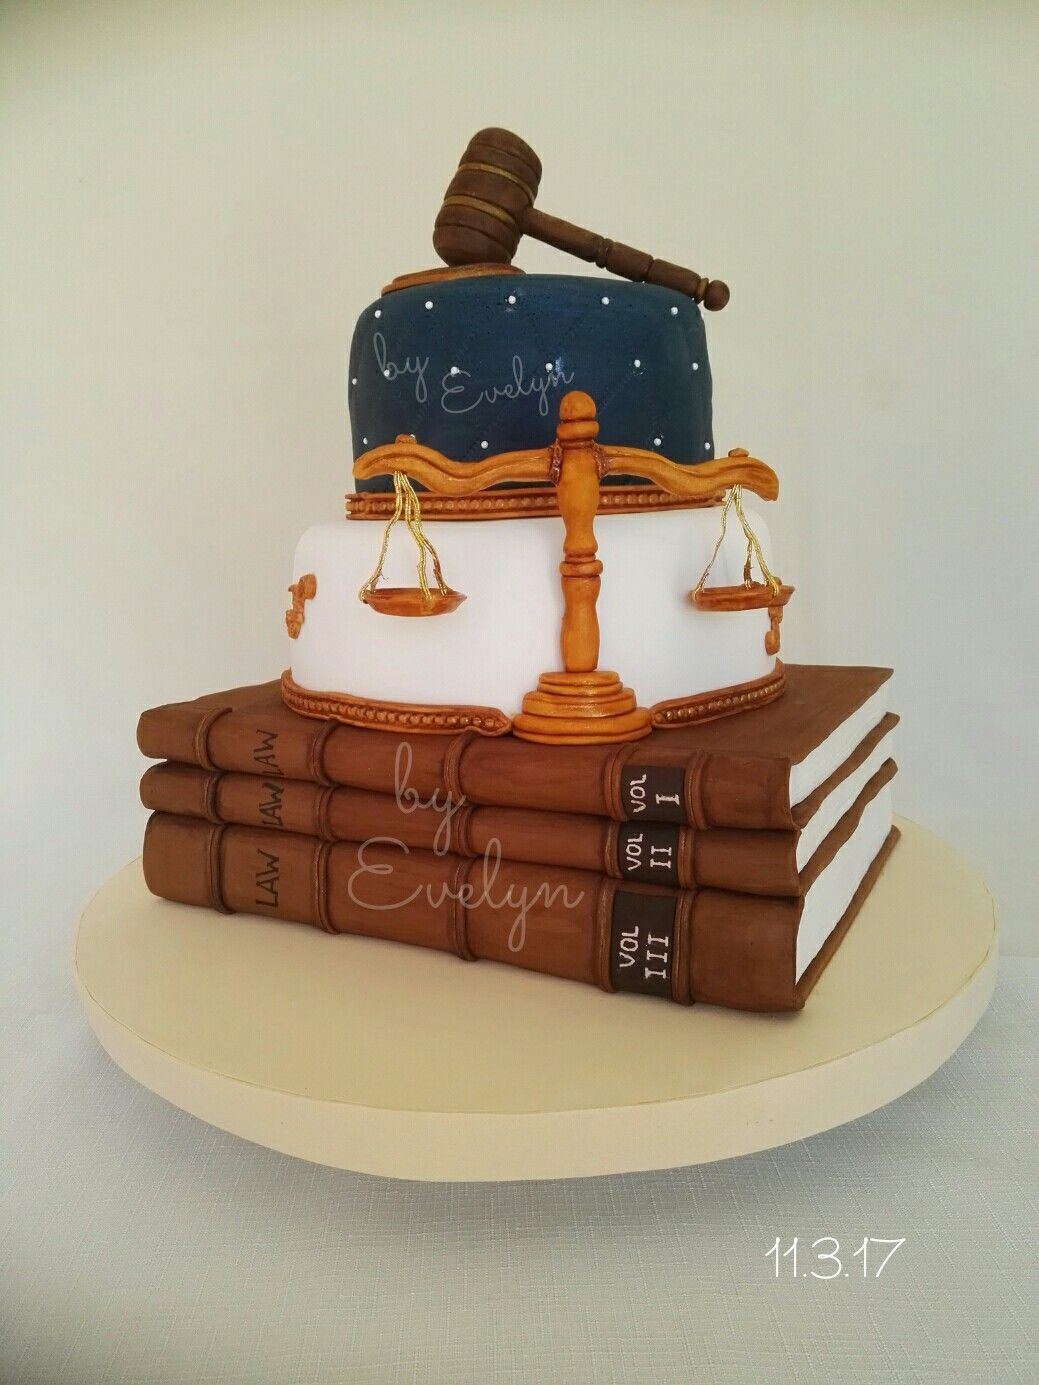 Lawyer S Birthday Cake Images